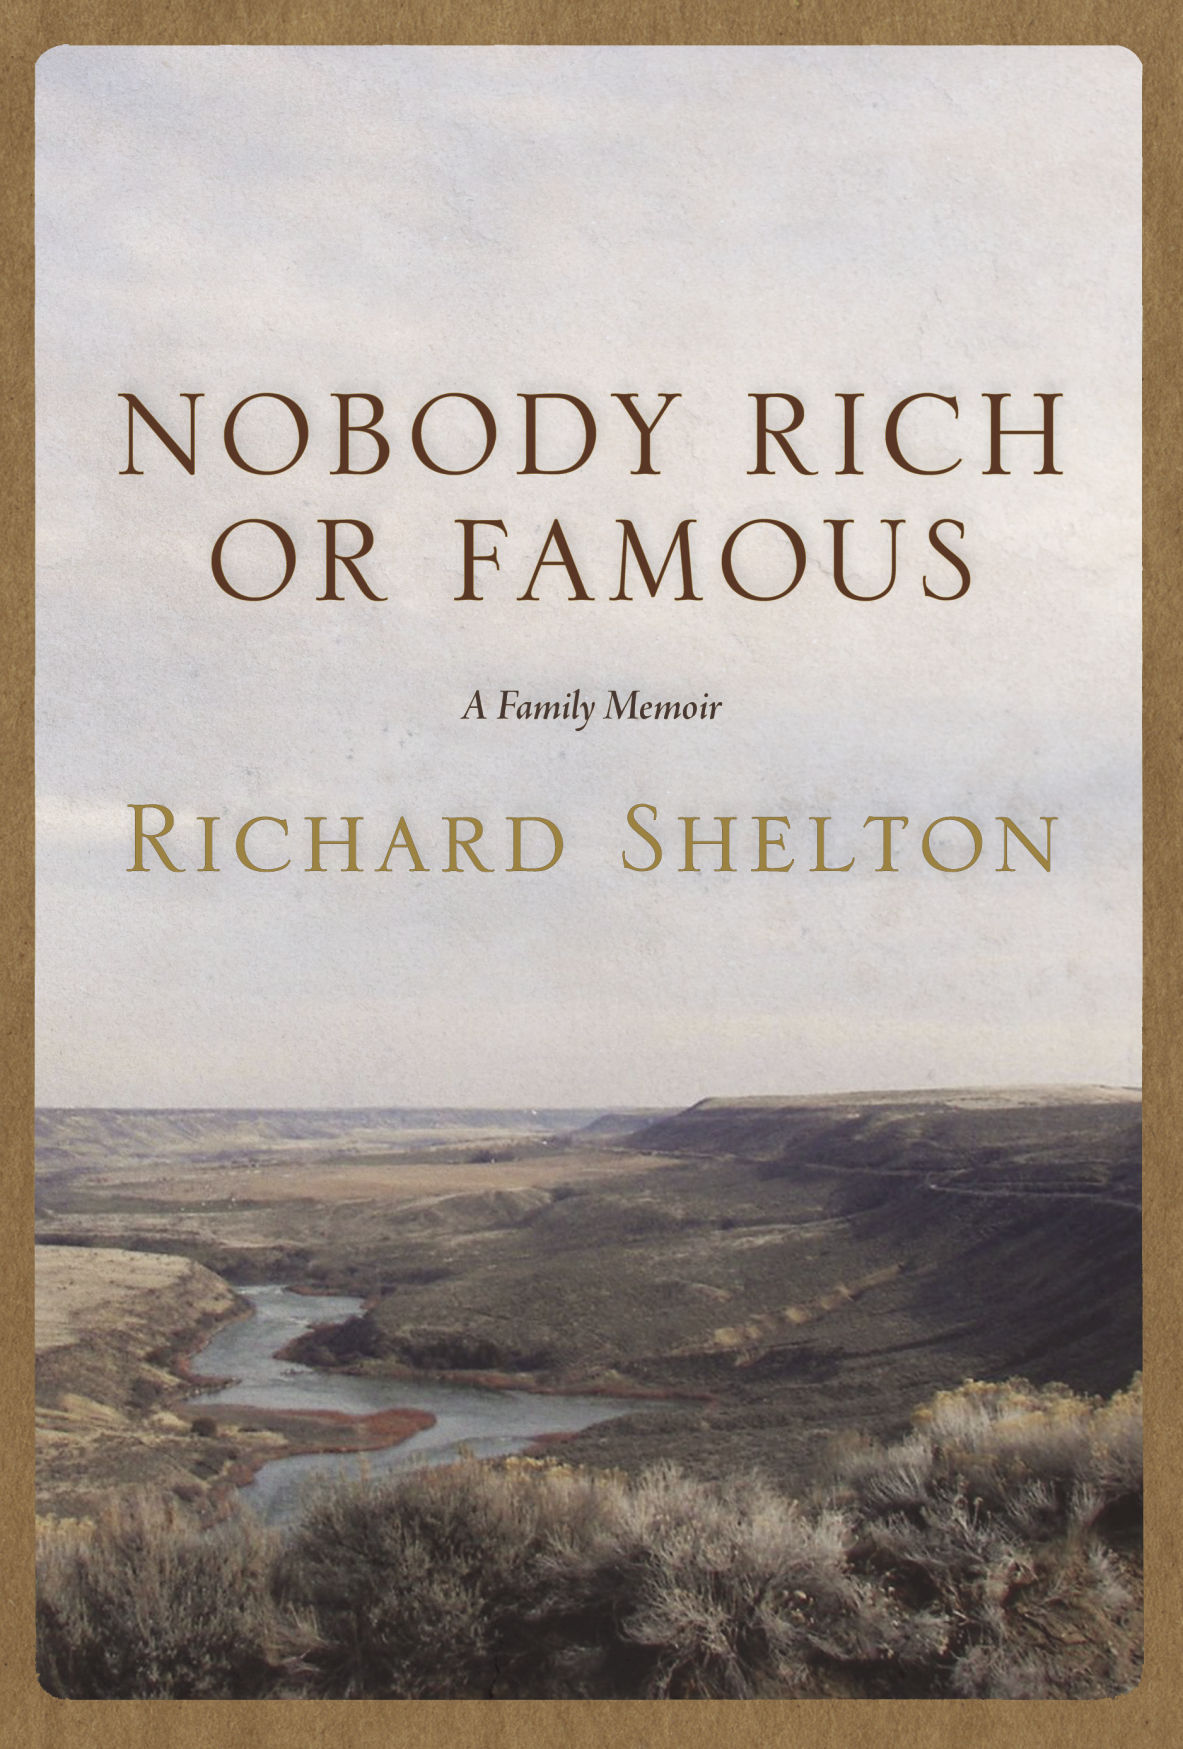 'Nobody Rich or Famous' book jacket